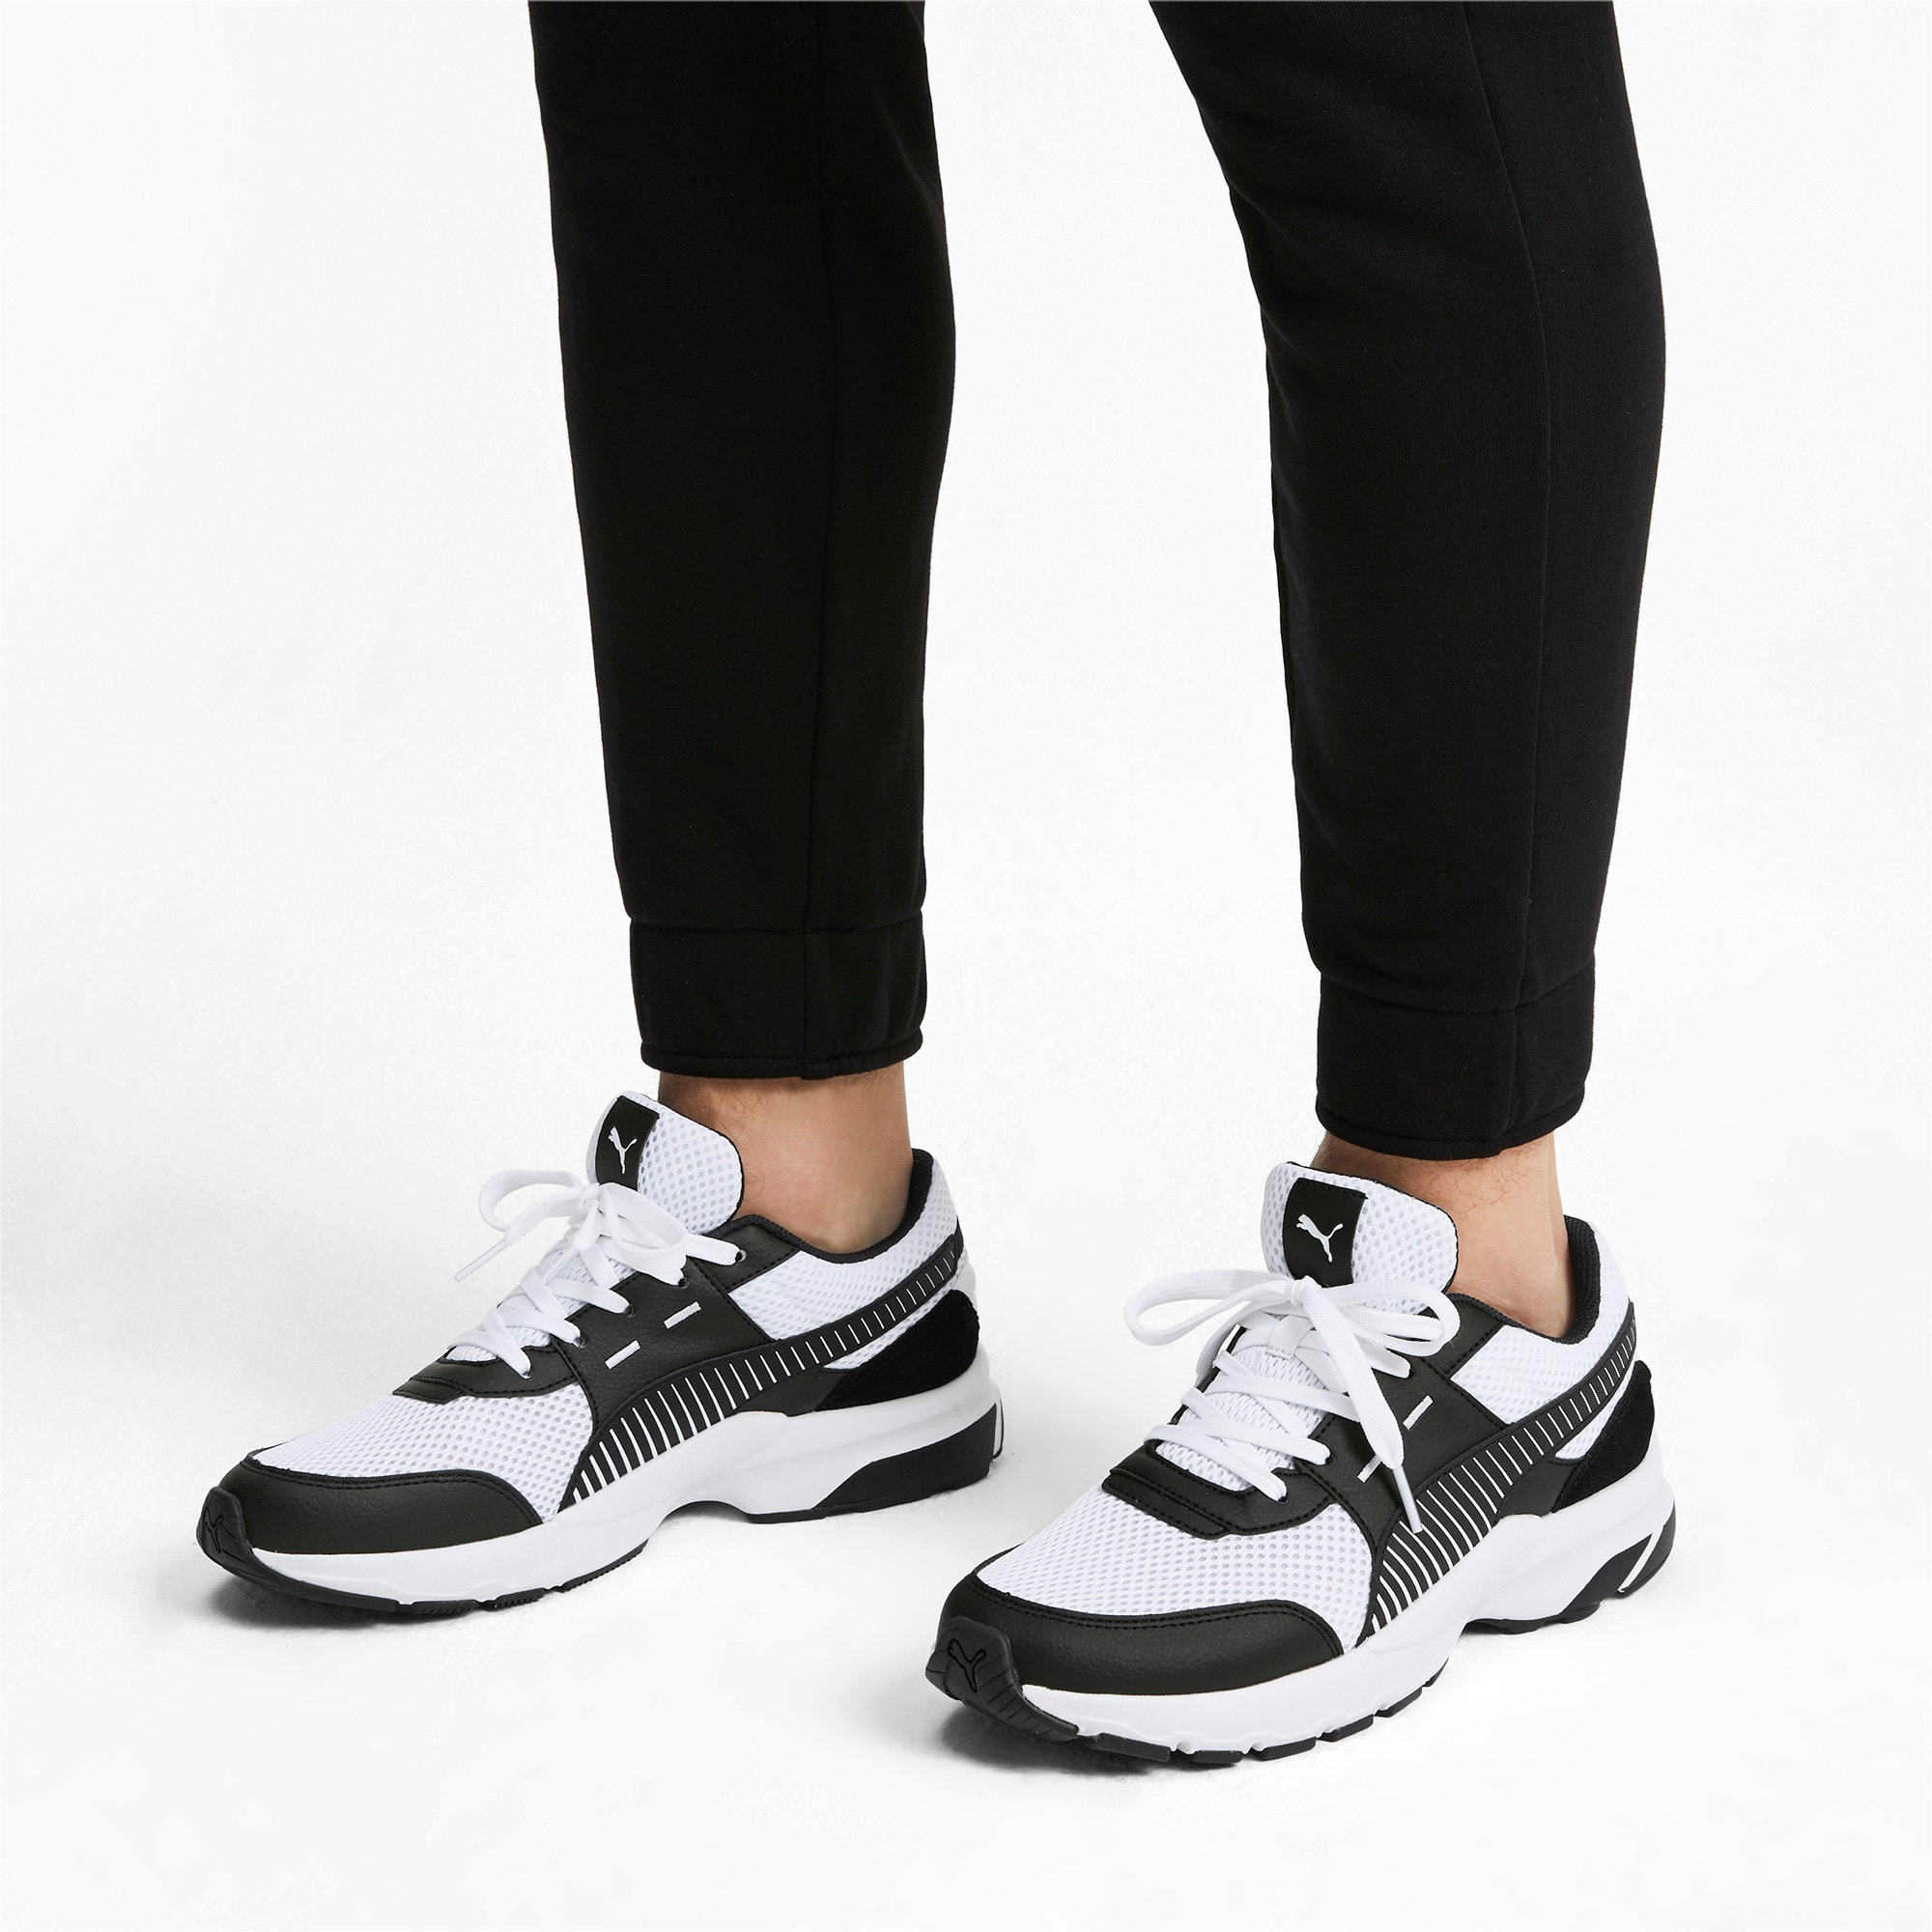 Thumbnail 2 of Future Runner Premium Laufschuhe, Puma White-Puma Black, medium